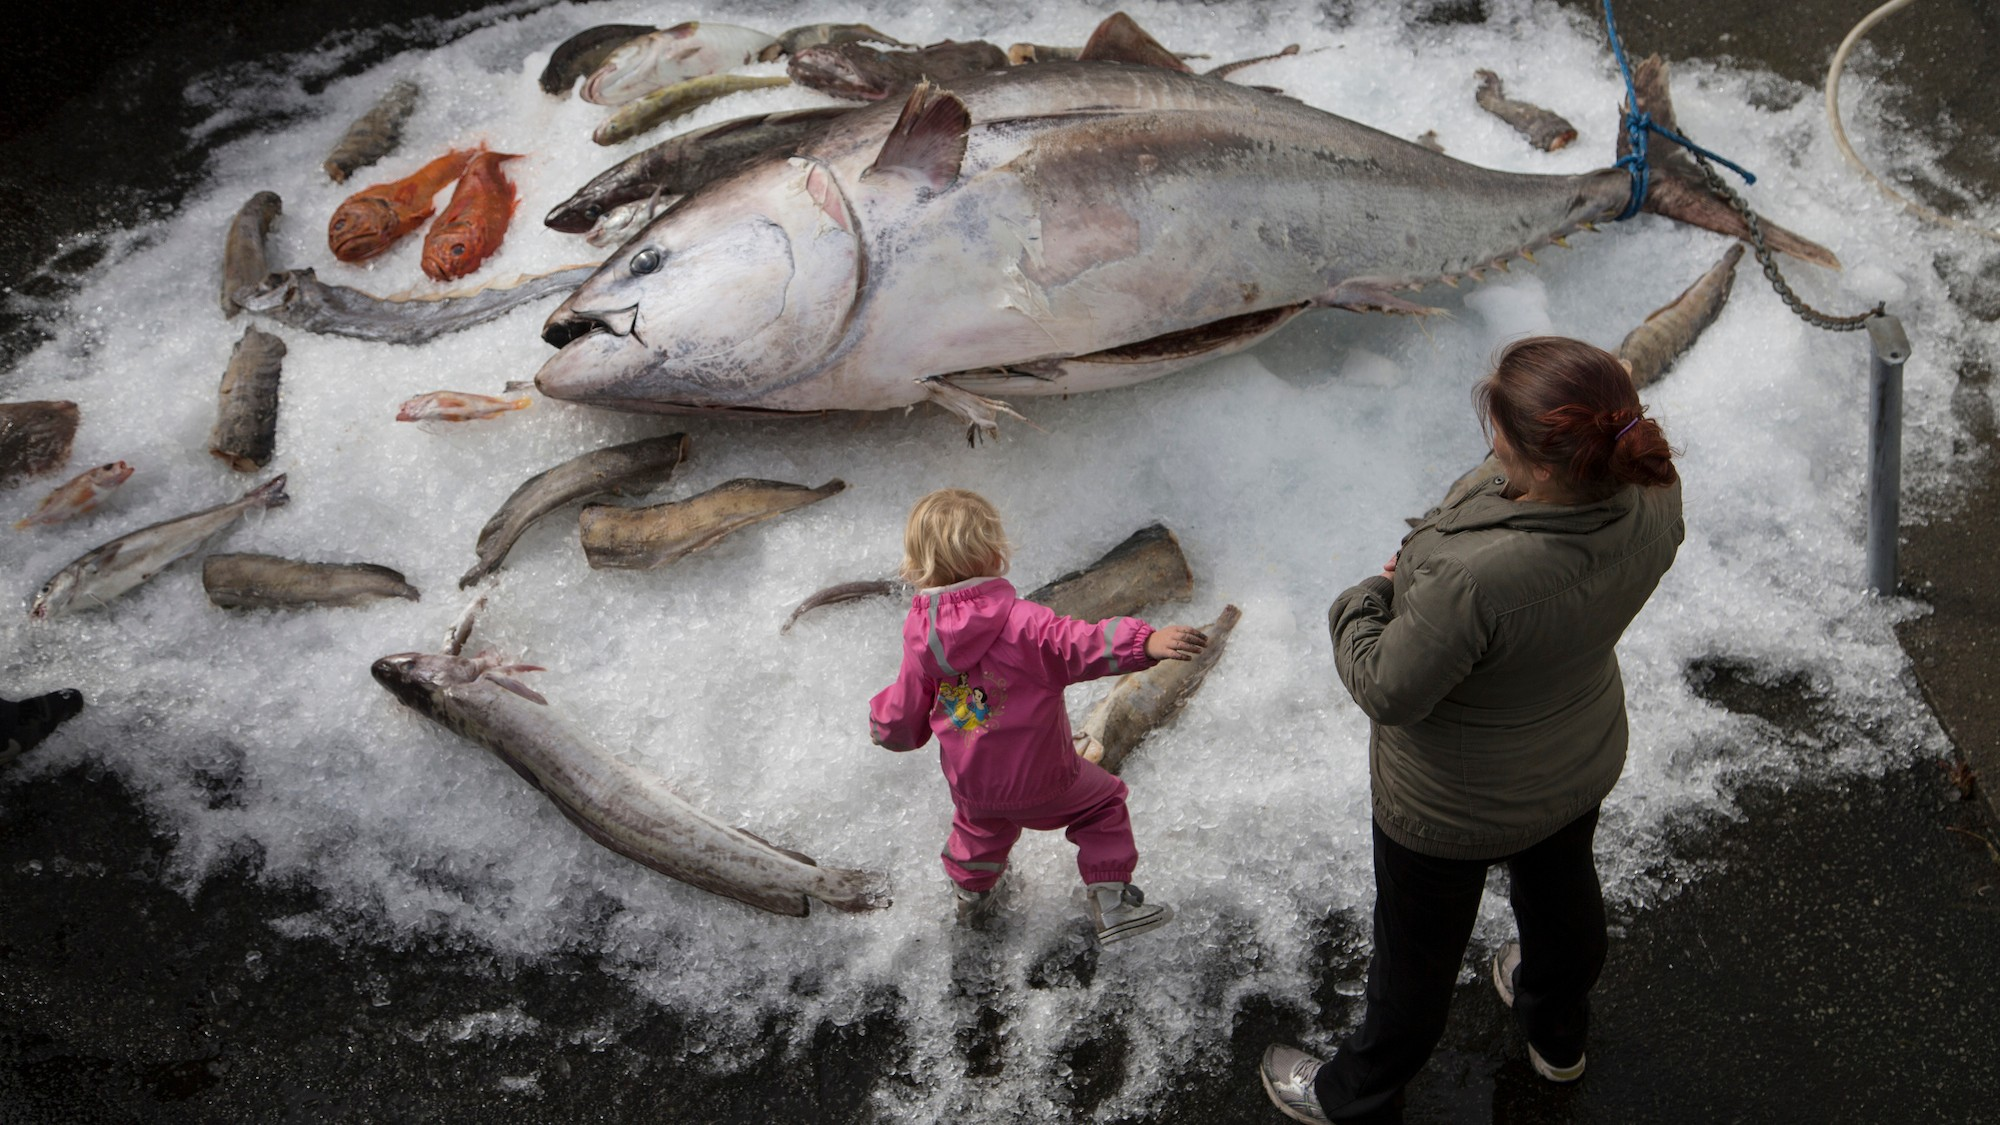 In Photos: The Faroe Islands' Controversial Whale Hunt